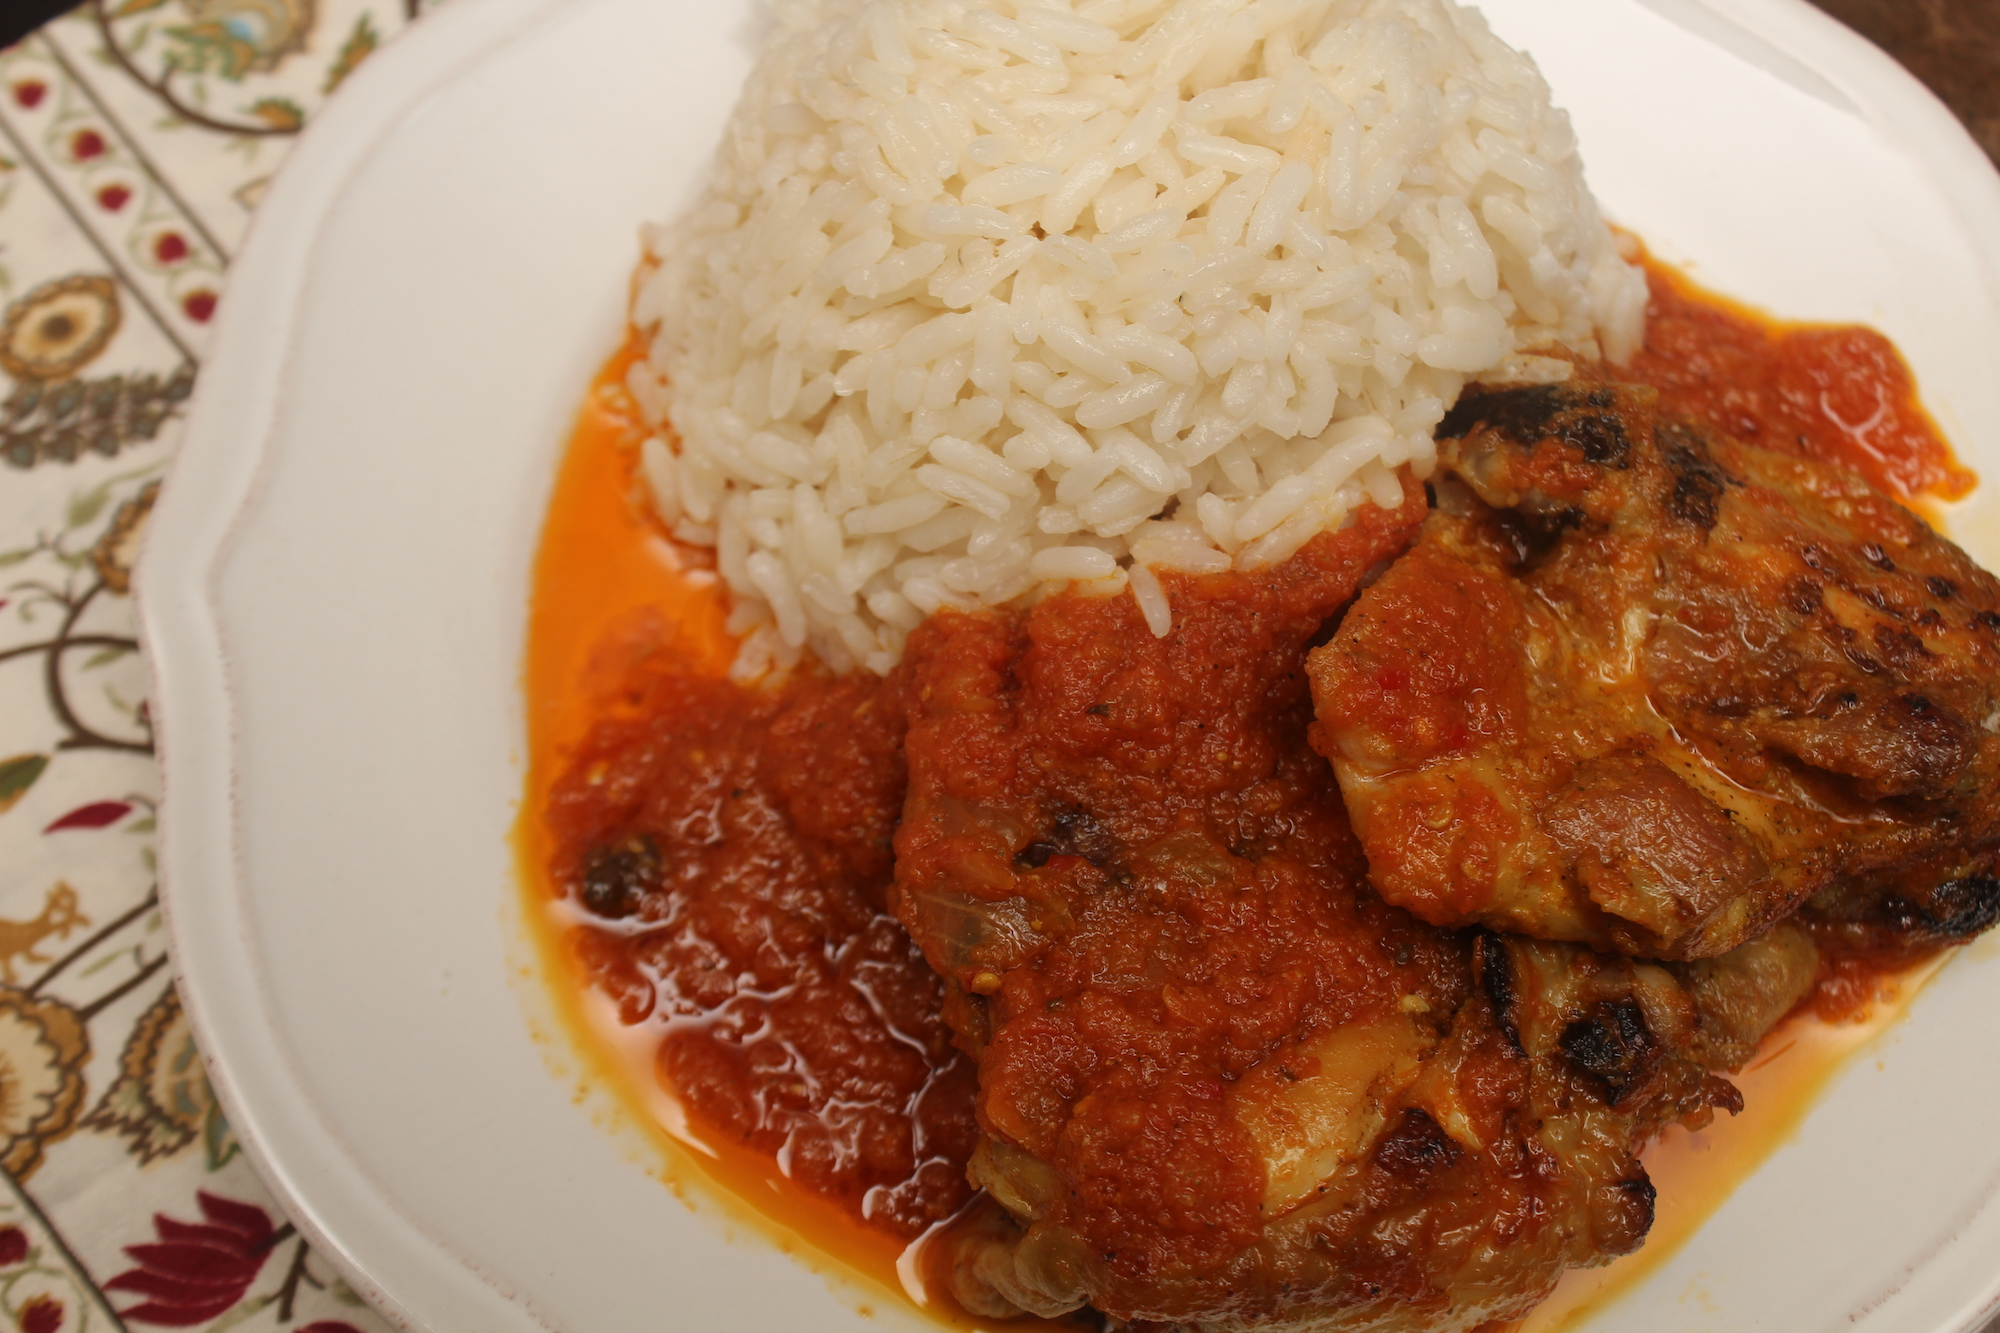 Rice and stew